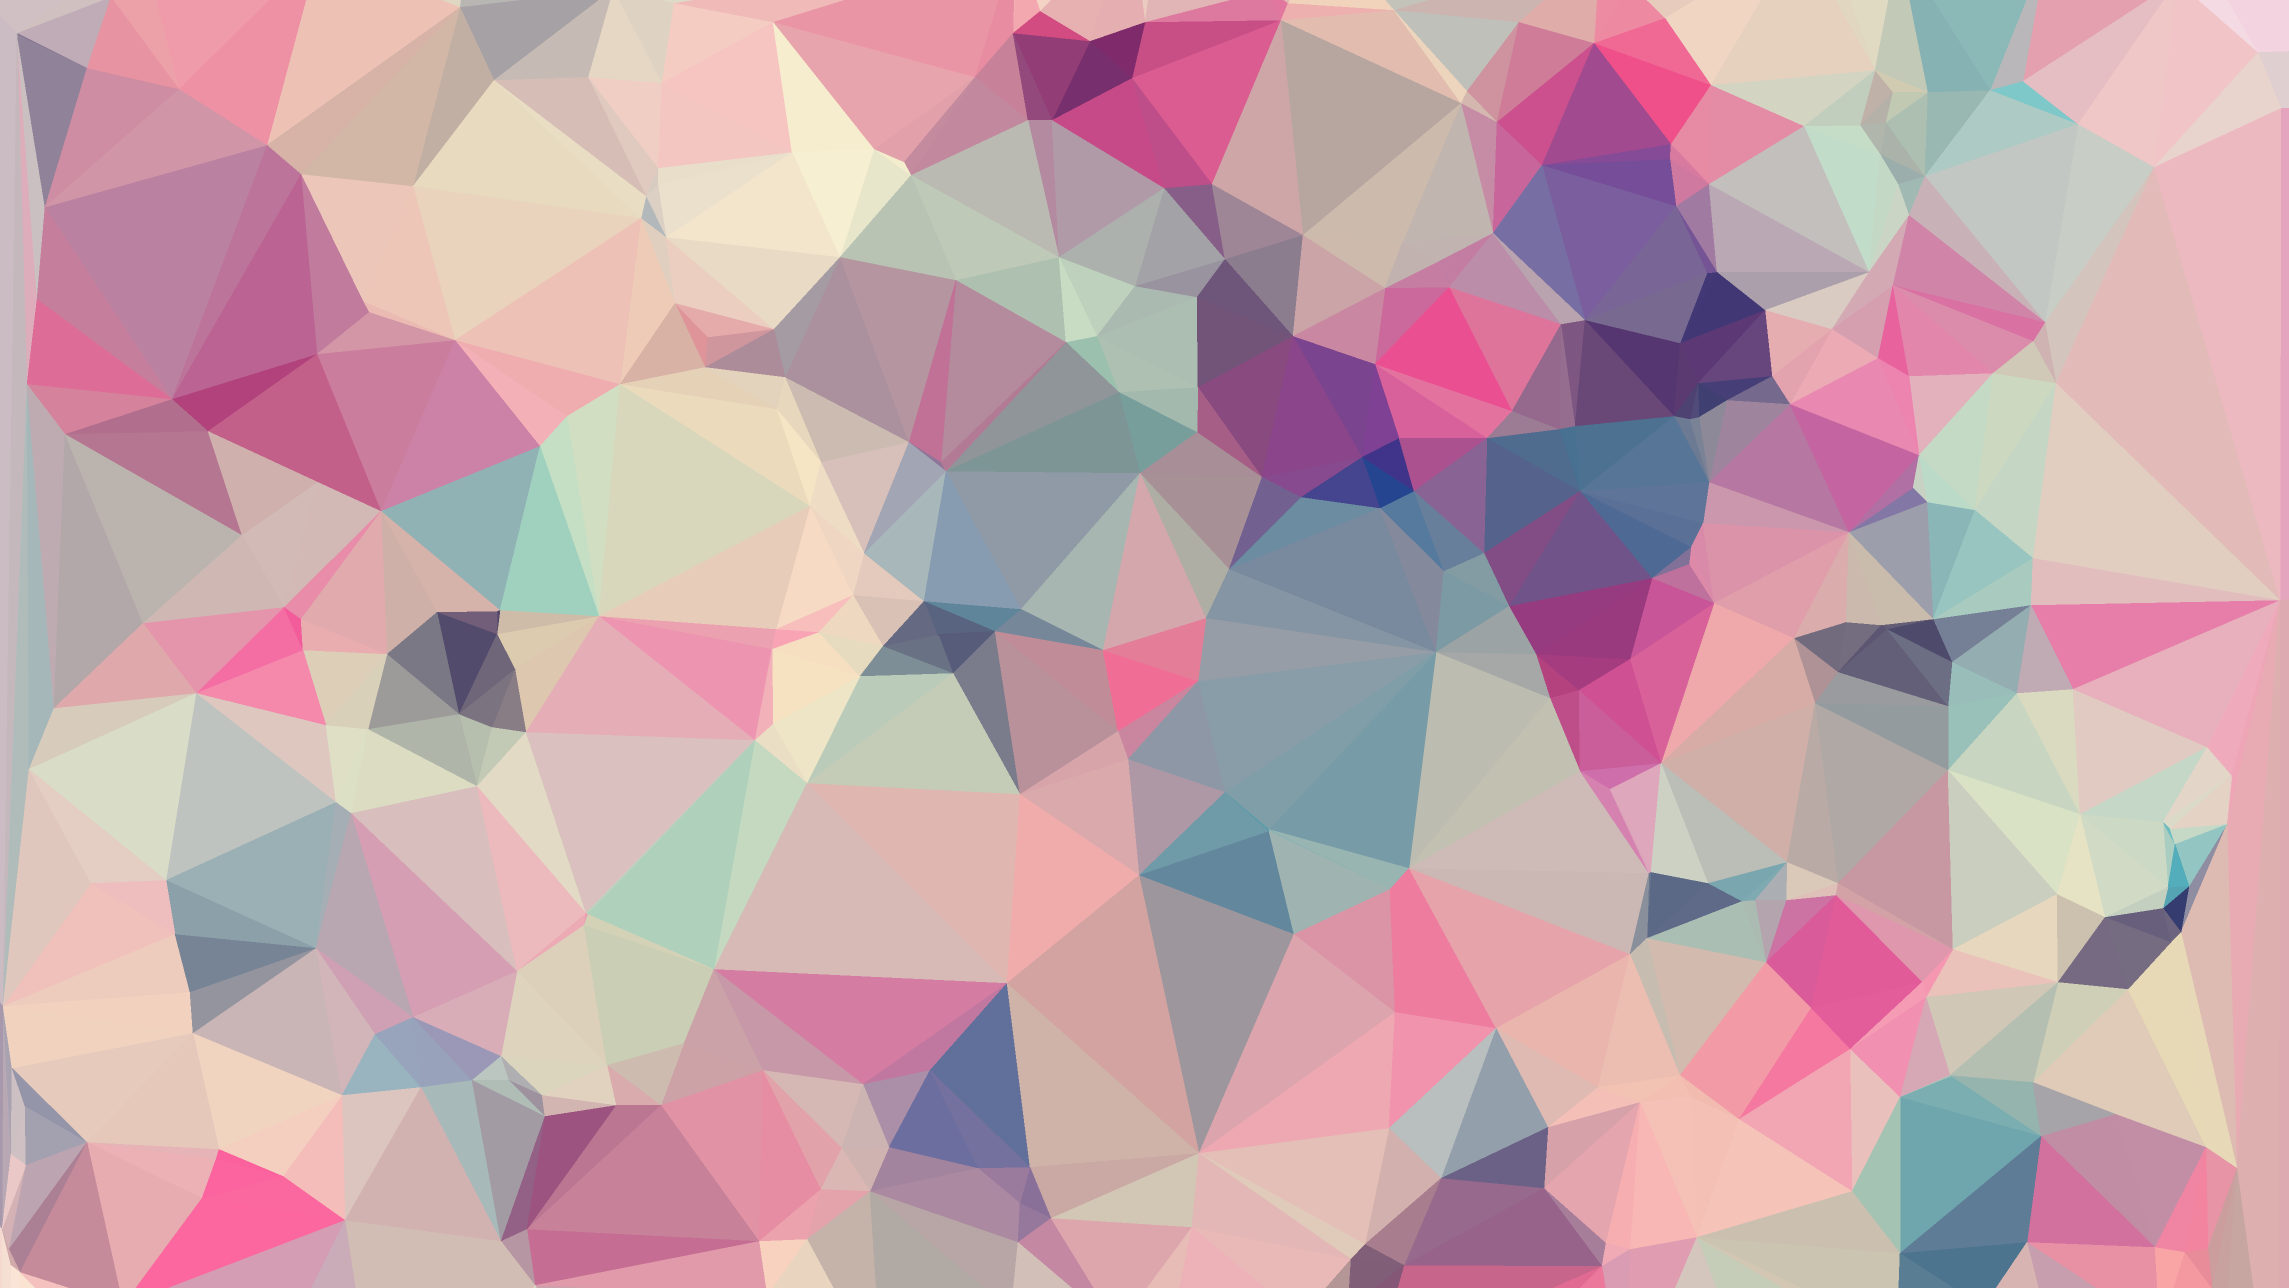 Wallpaper geometric color 23 2k uhd by airworldking on - Geometric wallpaper colorful ...